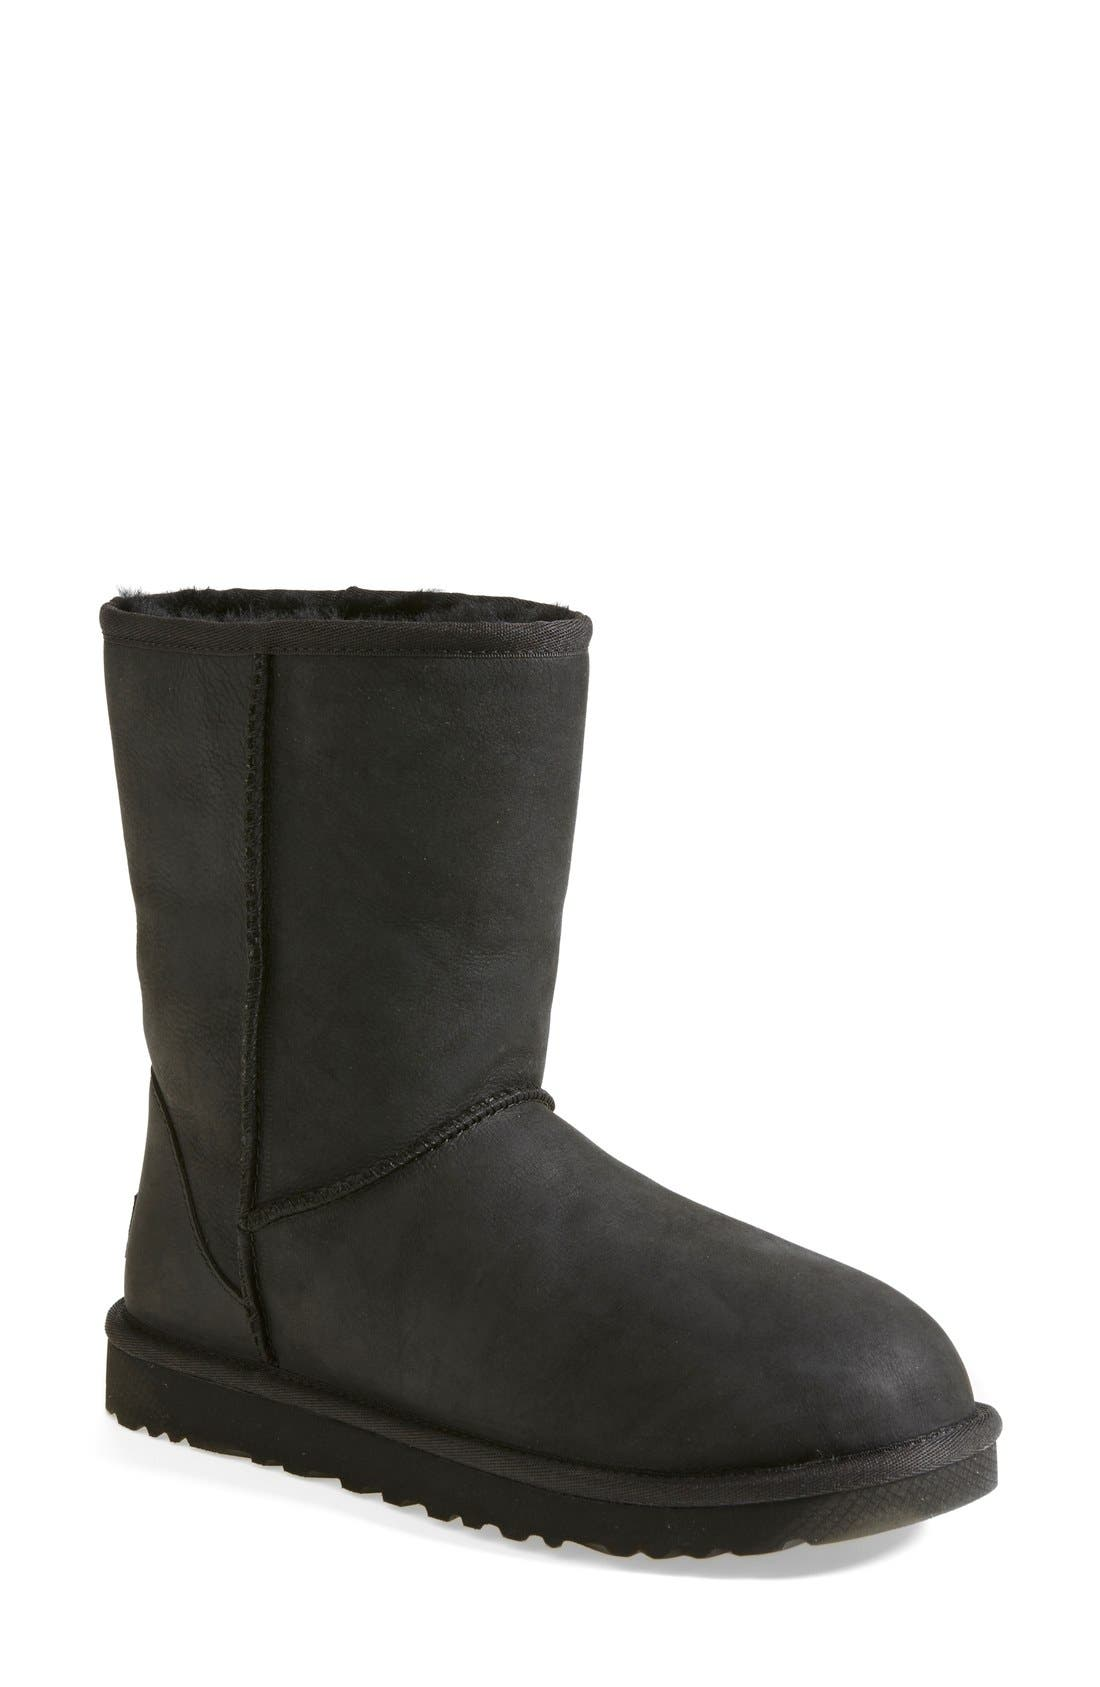 Alternate Image 1 Selected - UGG® 'Classic Short' Leather Water Resistant Boot (Women)